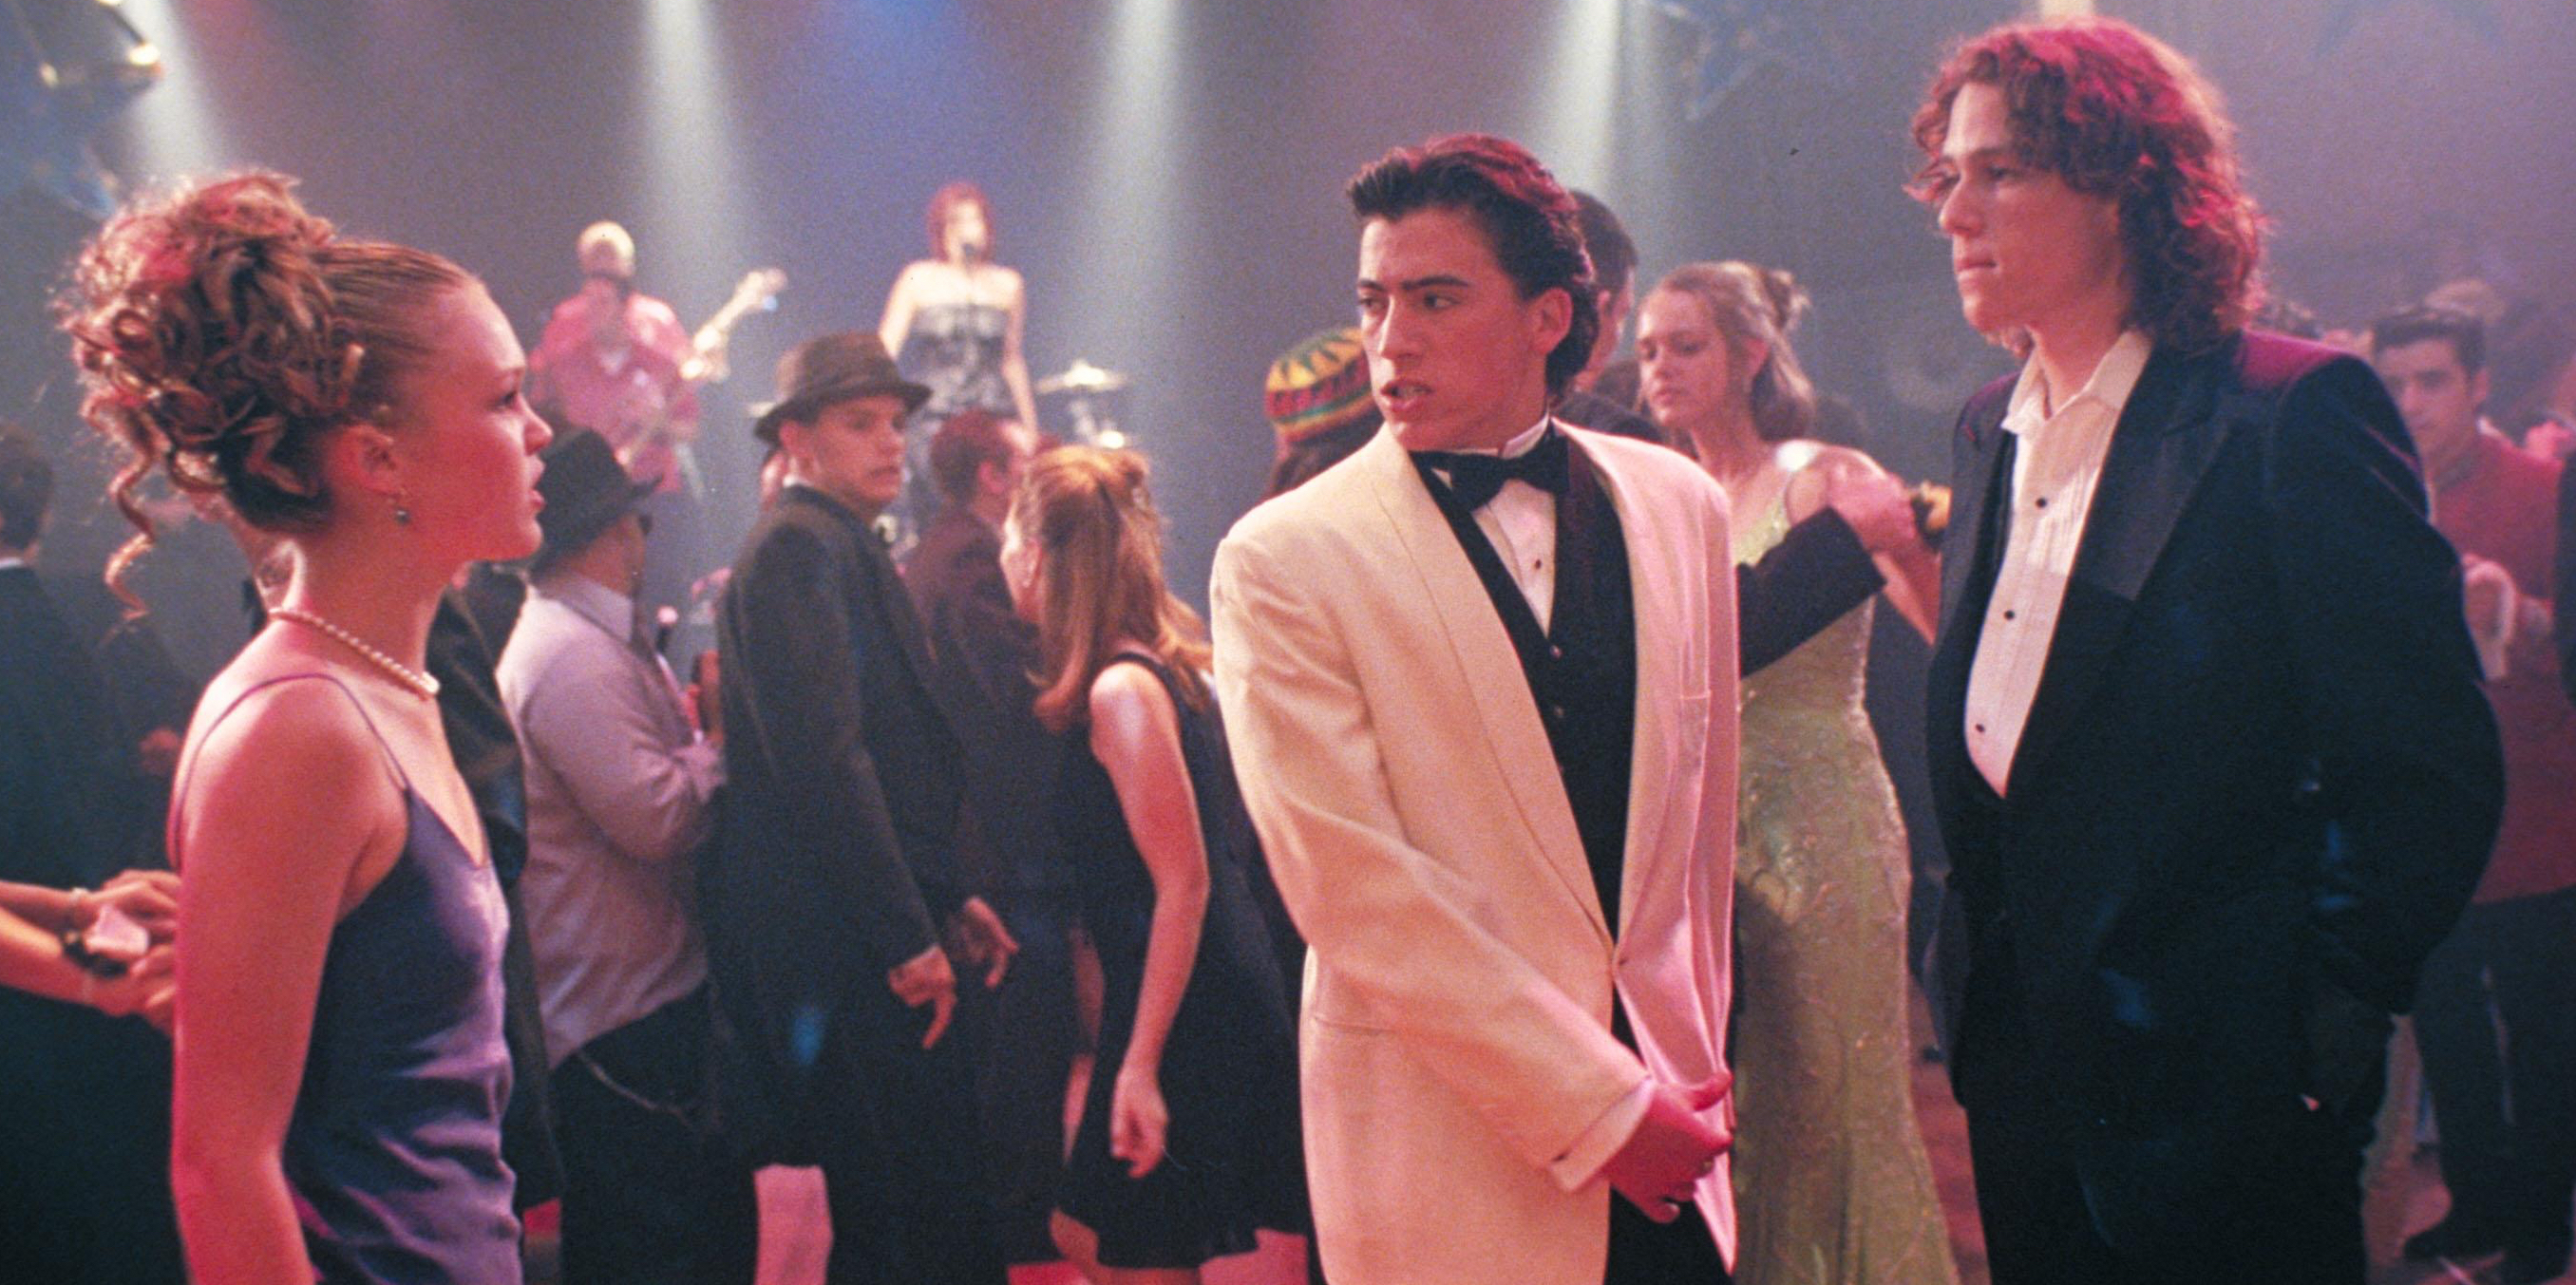 10 Things I Hate About You Prom: 15 Movies That Perfectly Capture The '90s